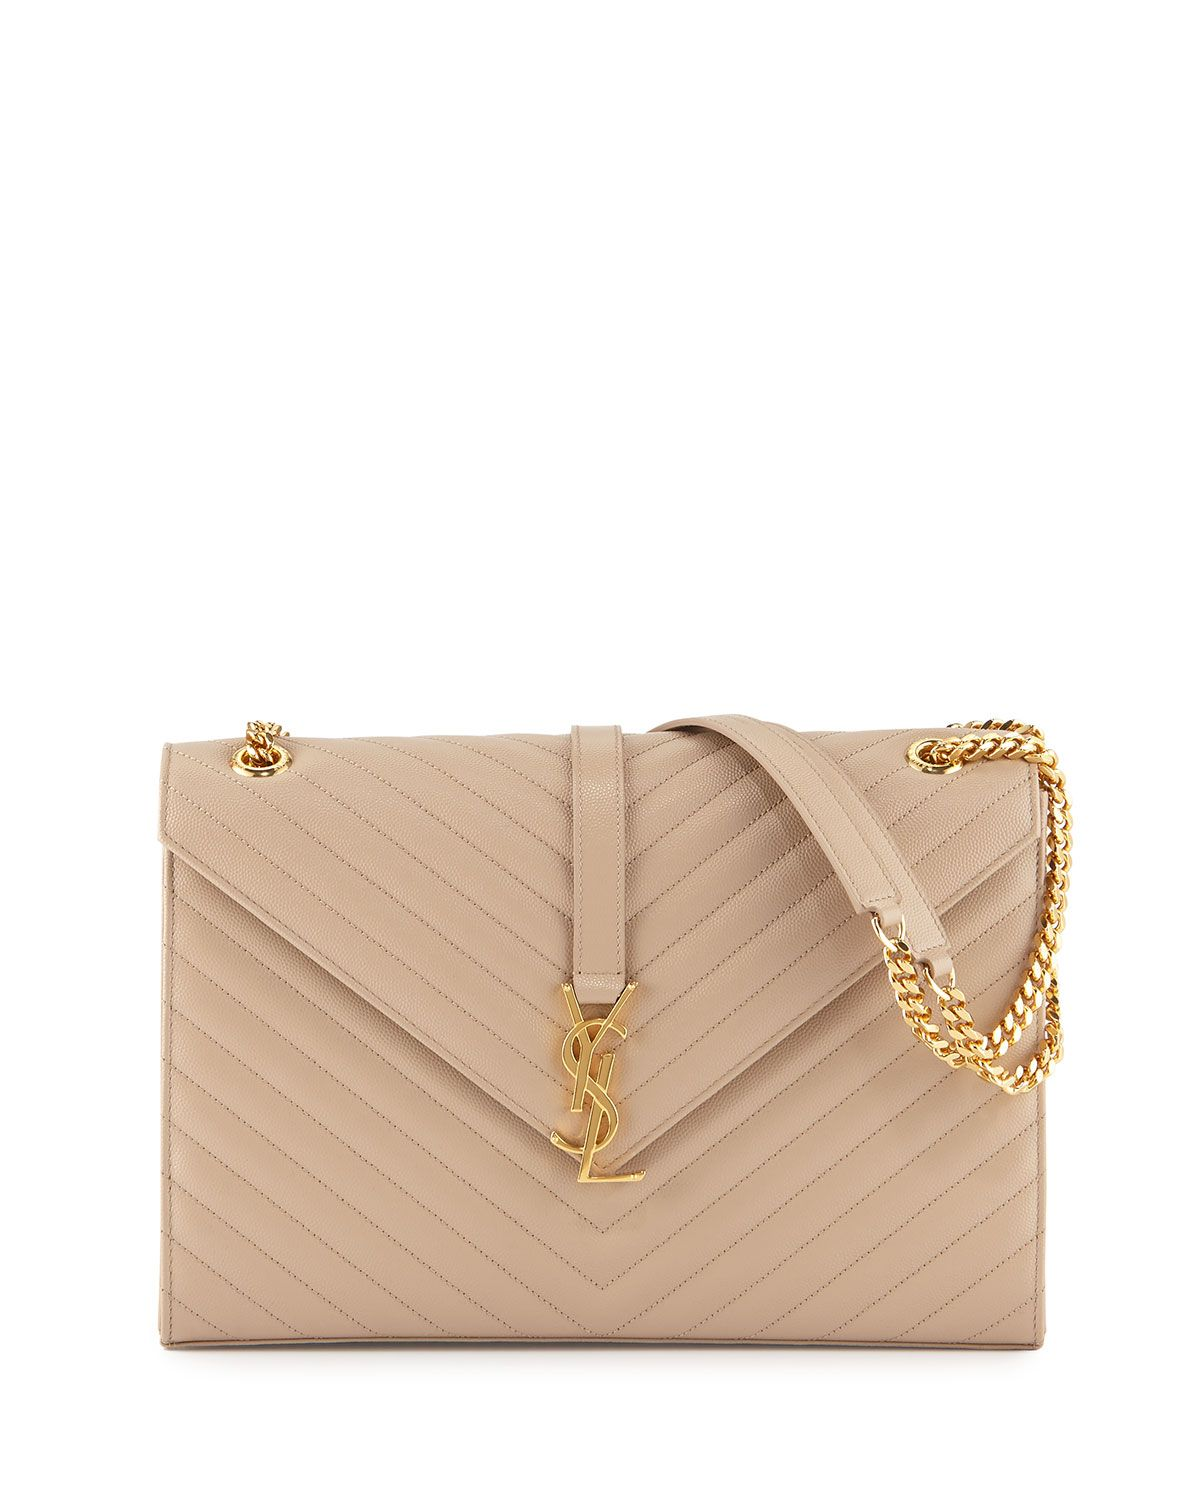 748c972c0bd Monogram Matelasse Shoulder Bag, Dark Beige, Women's - Saint Laurent